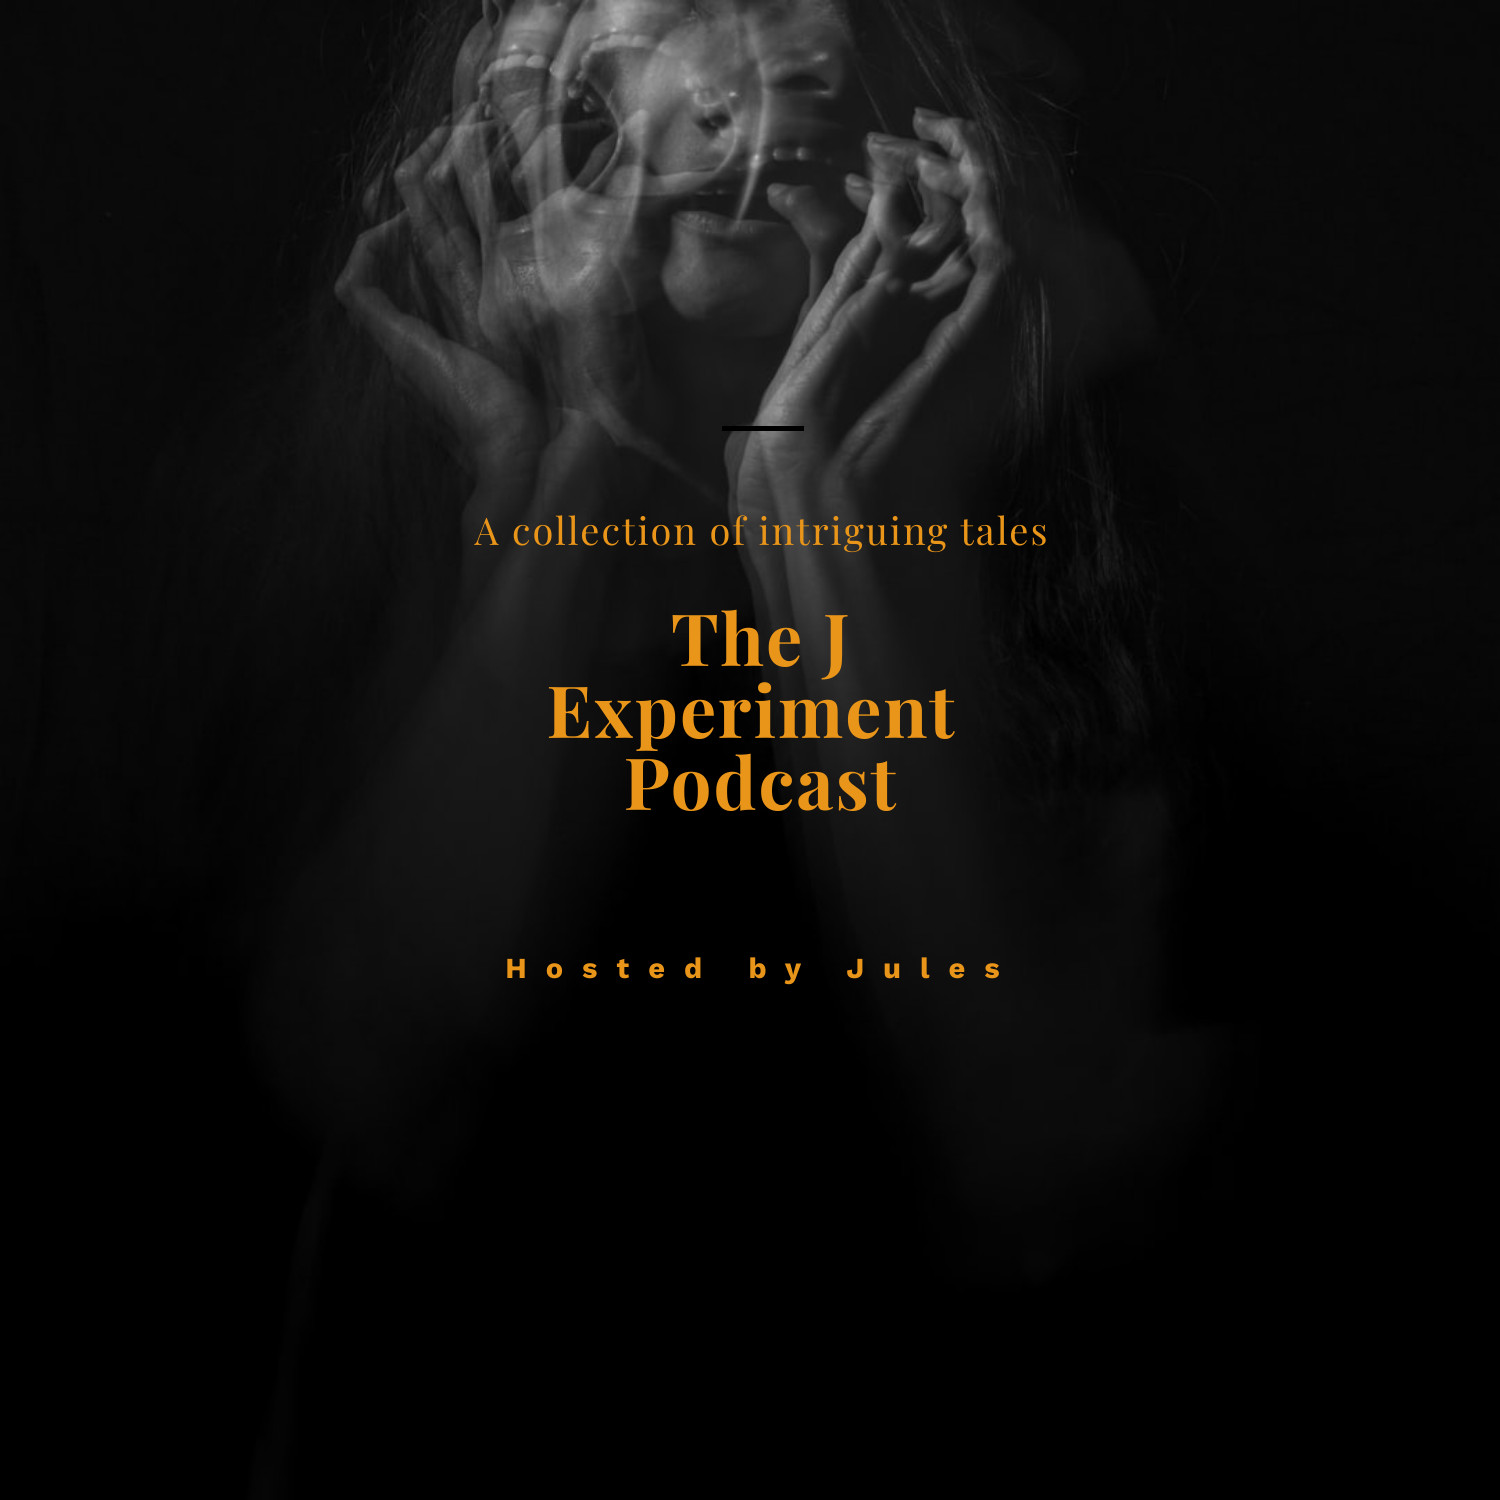 The J Experiment